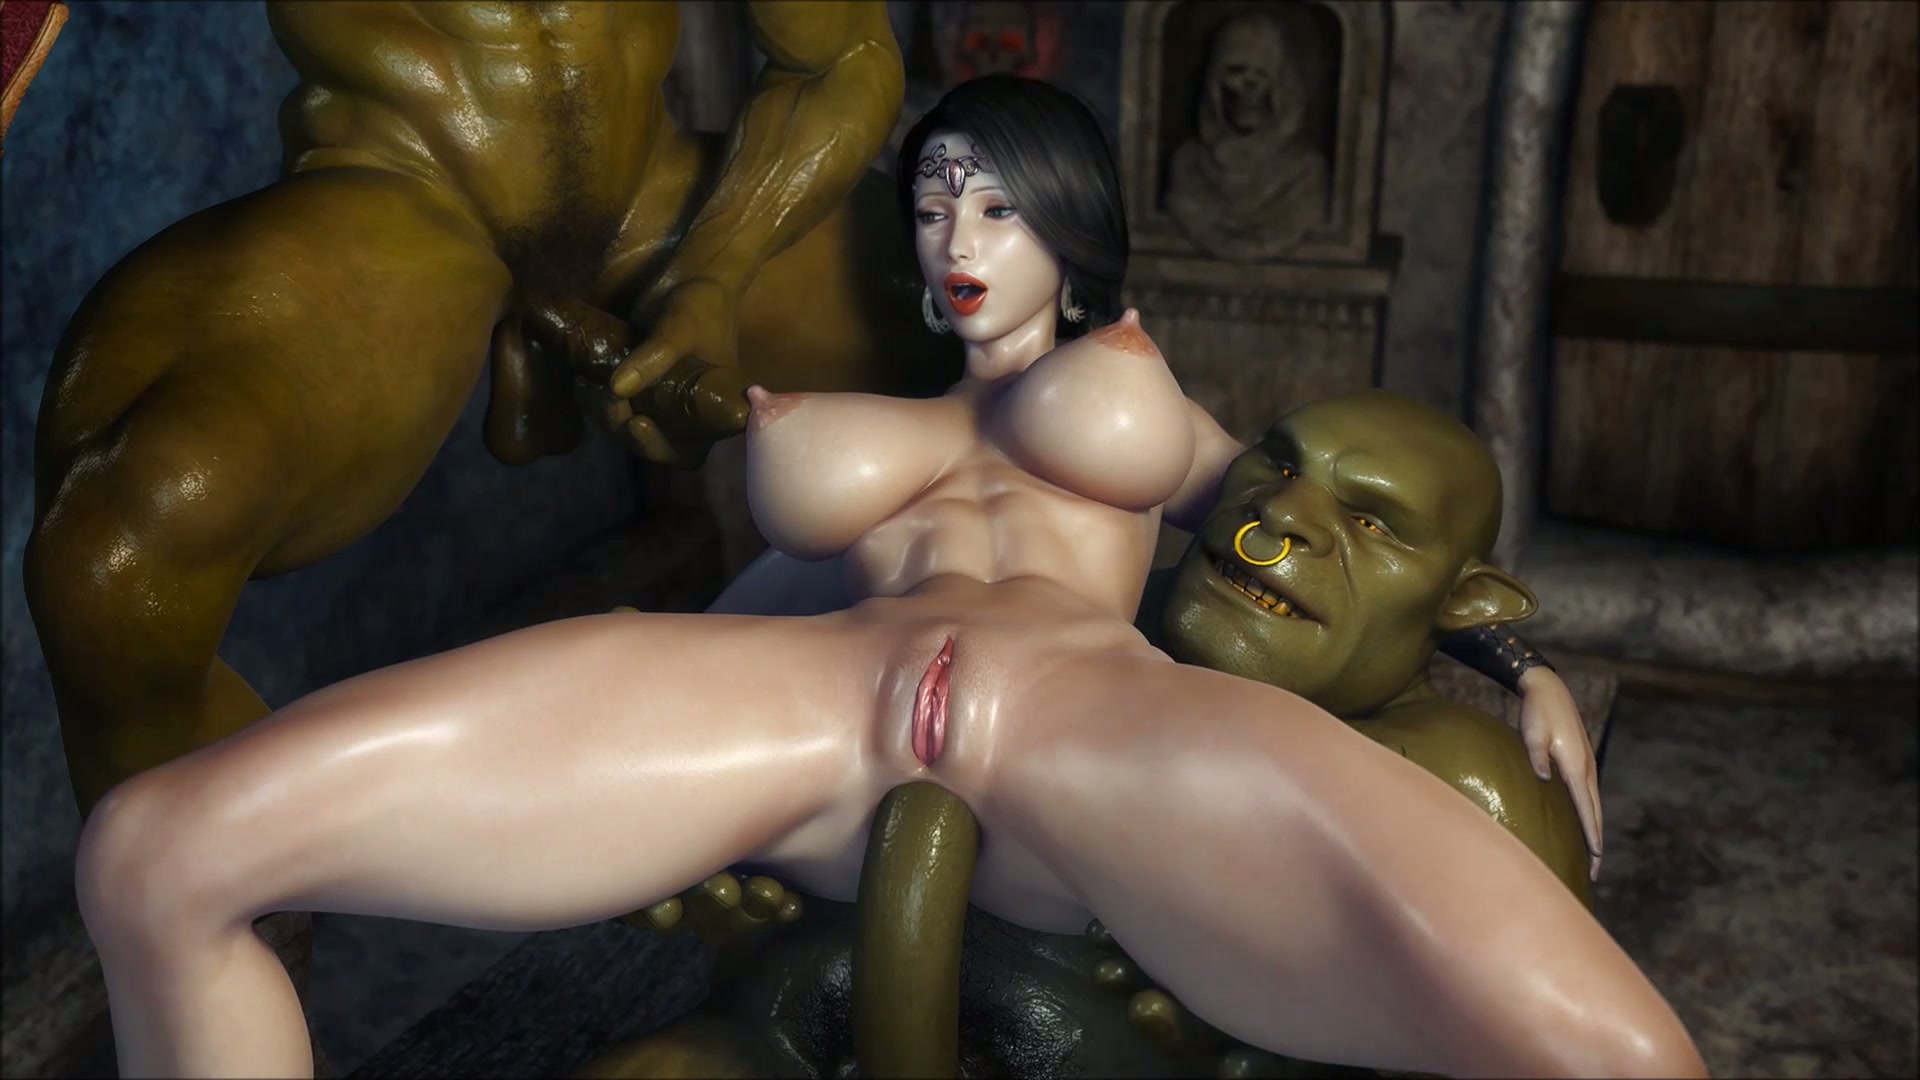 Animated fantasy creature sex nude comics